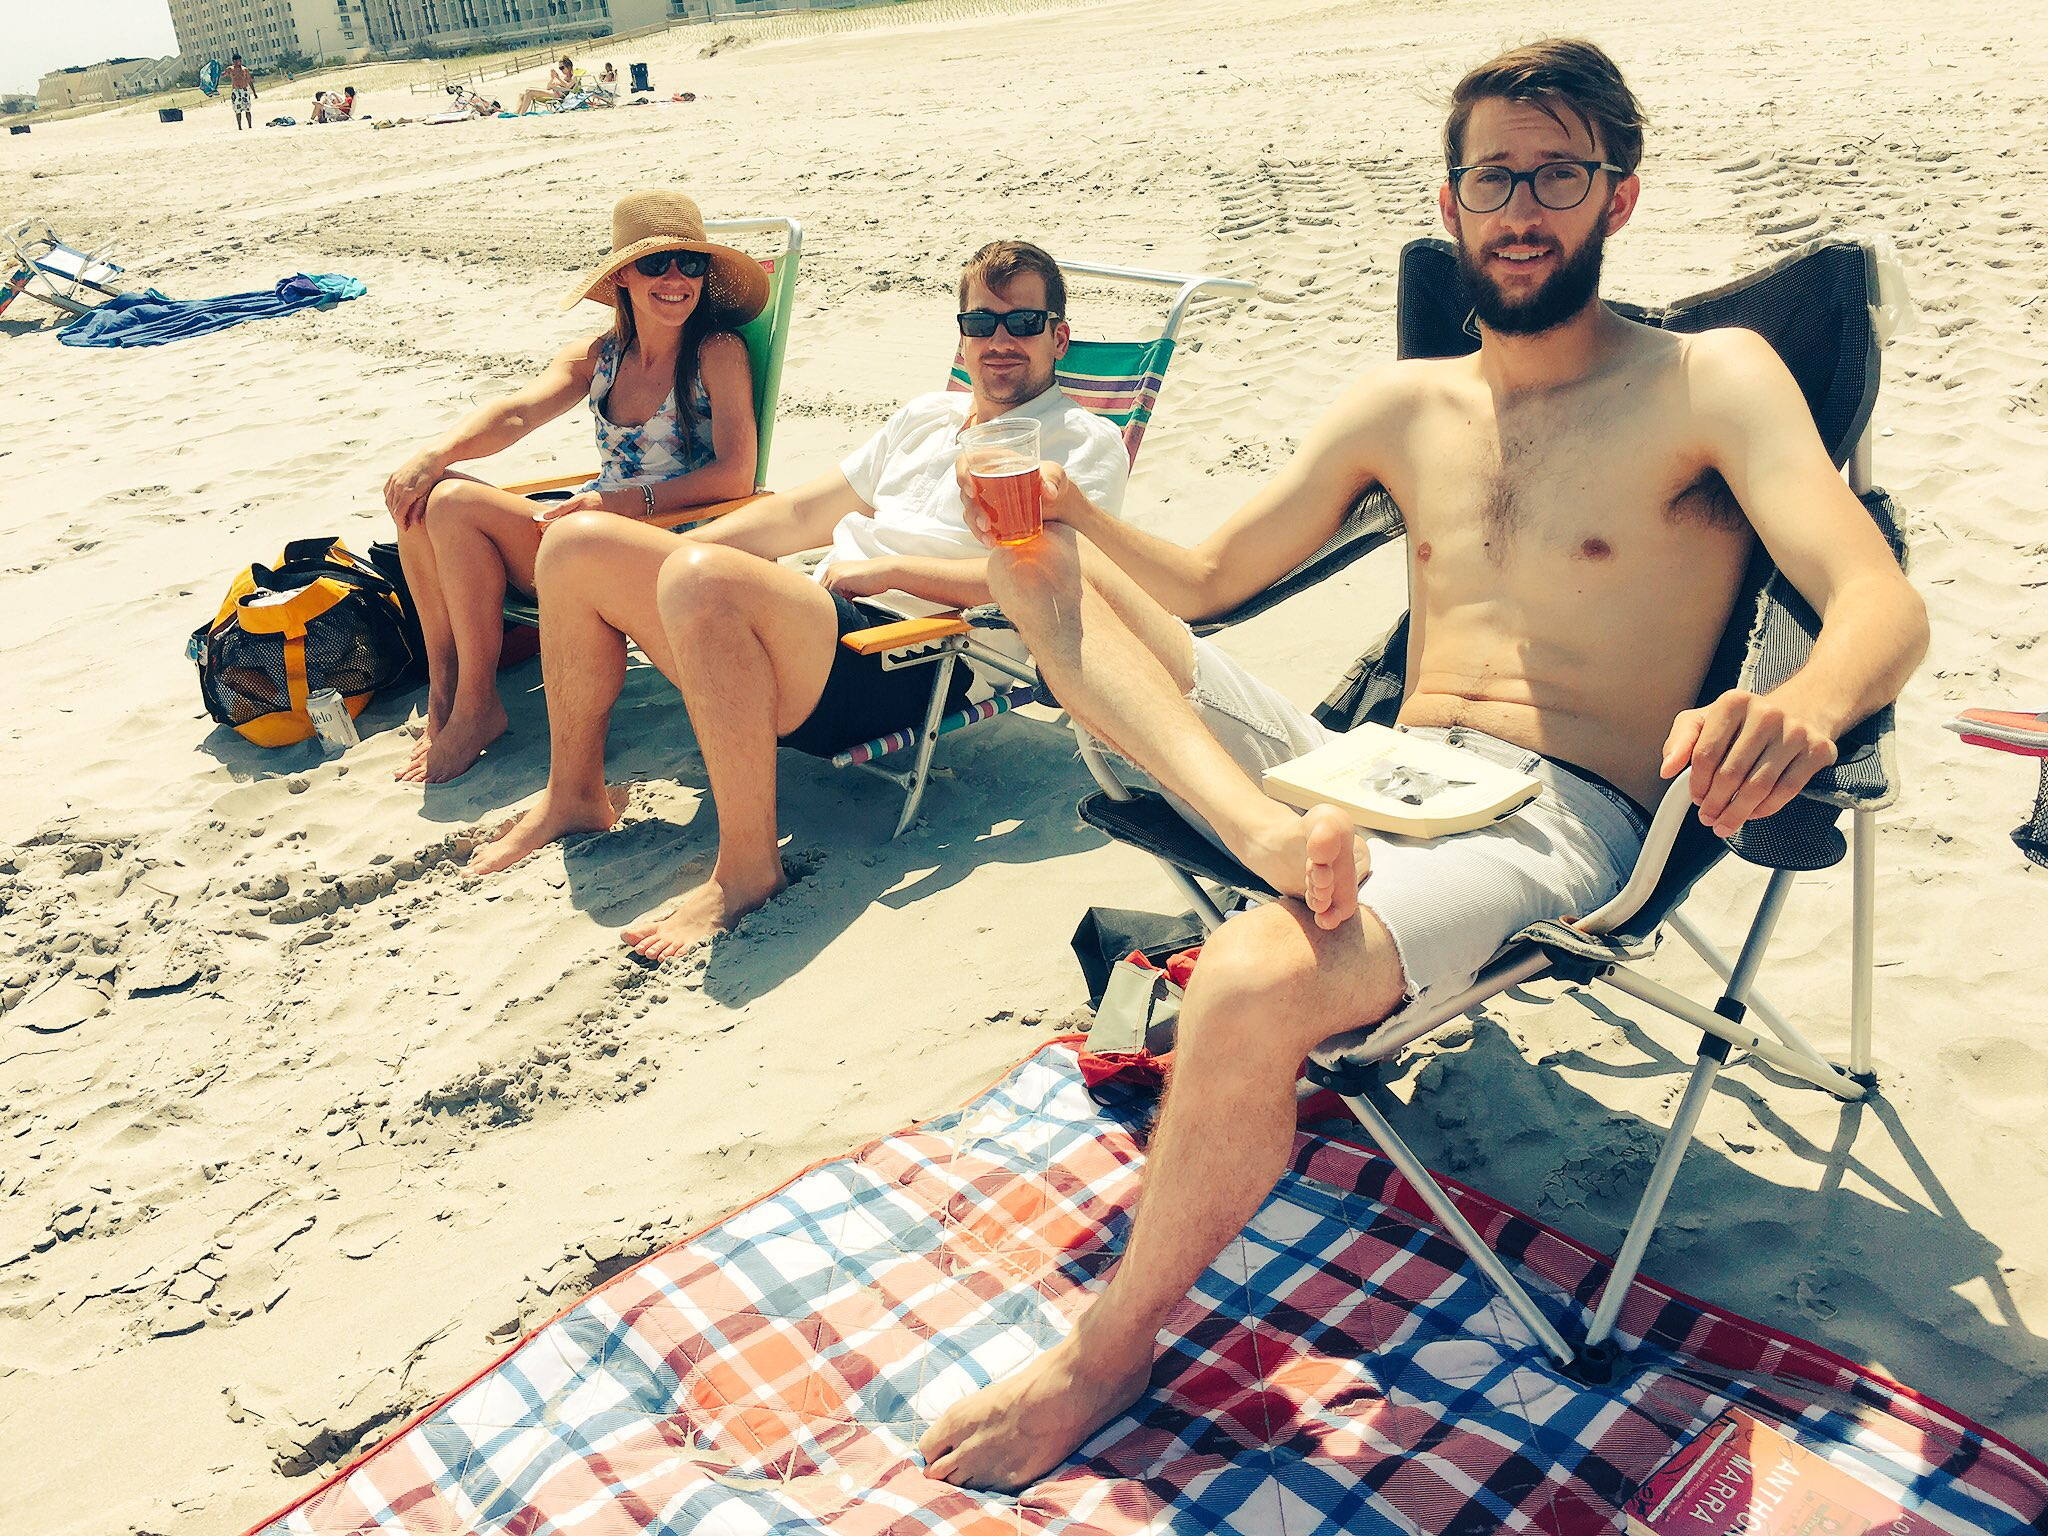 Beach time at the shore! From L to R: Leah, John and Carson.